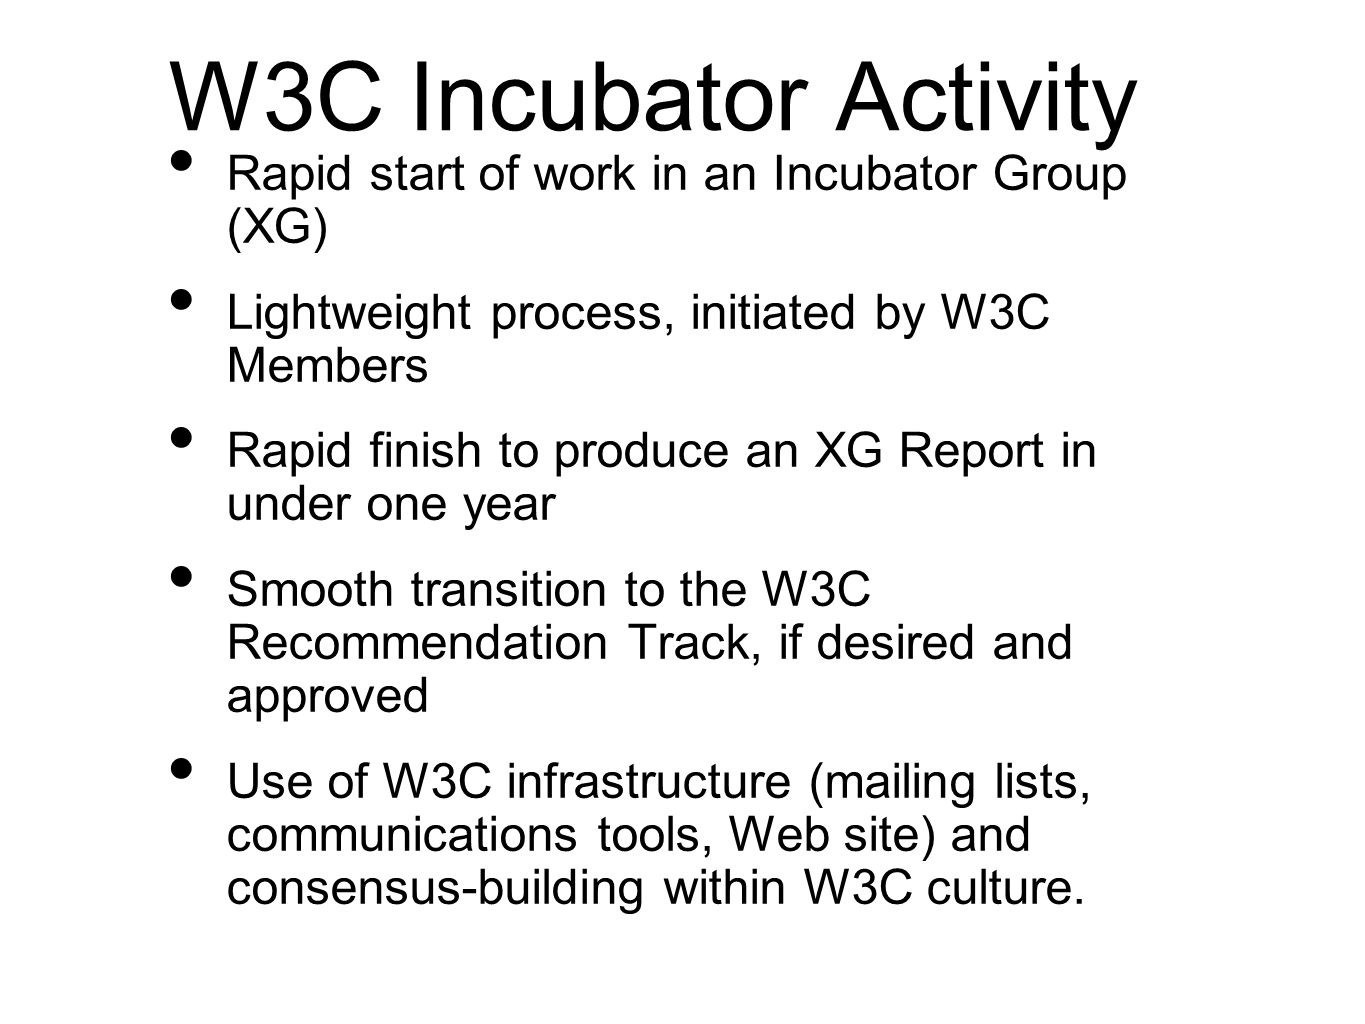 W3C Incubator Activity Rapid start of work in an Incubator Group (XG) Lightweight process, initiated by W3C Members Rapid finish to produce an XG Repo